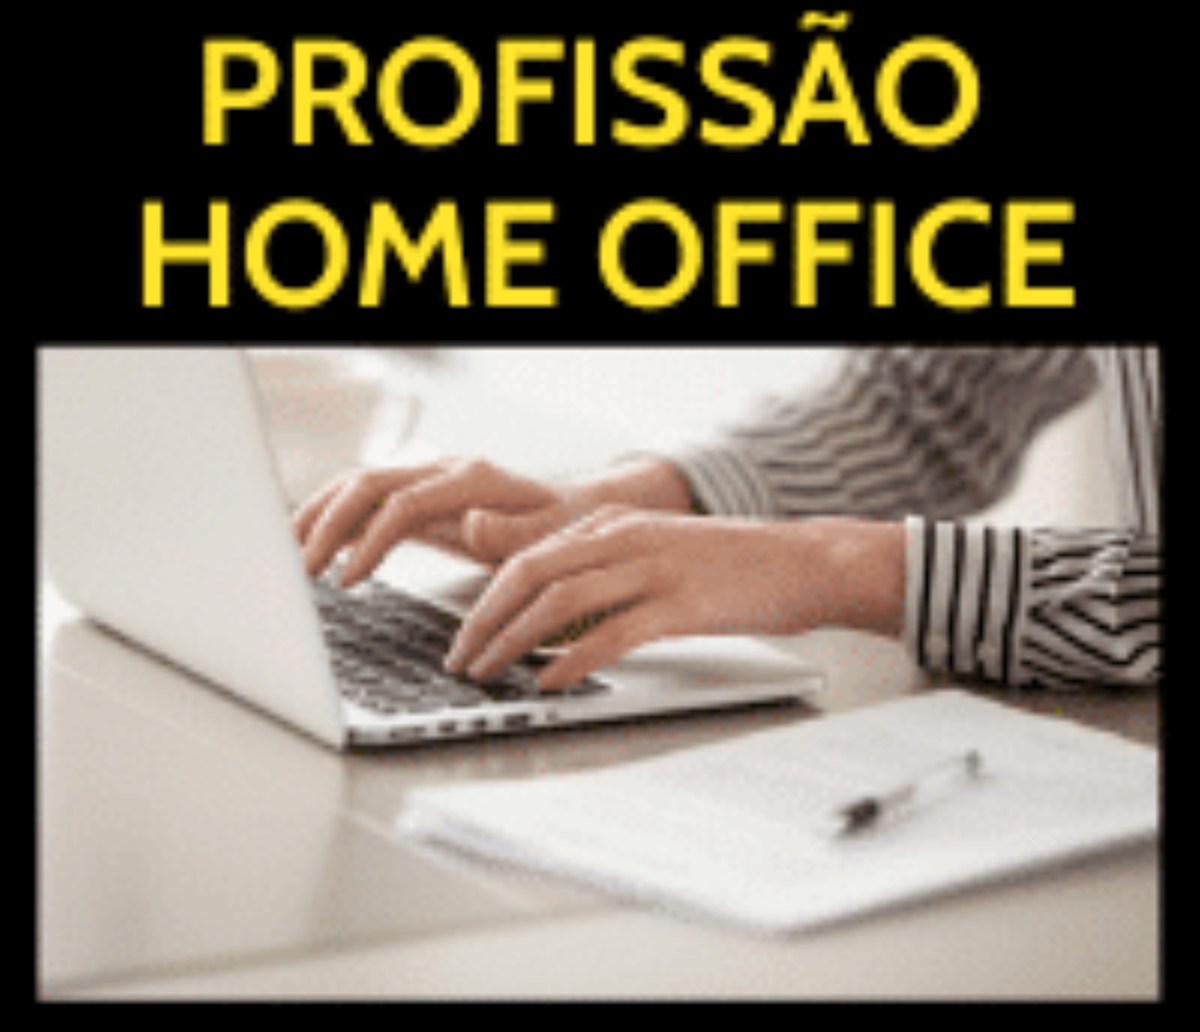 profissoes do futuro home office